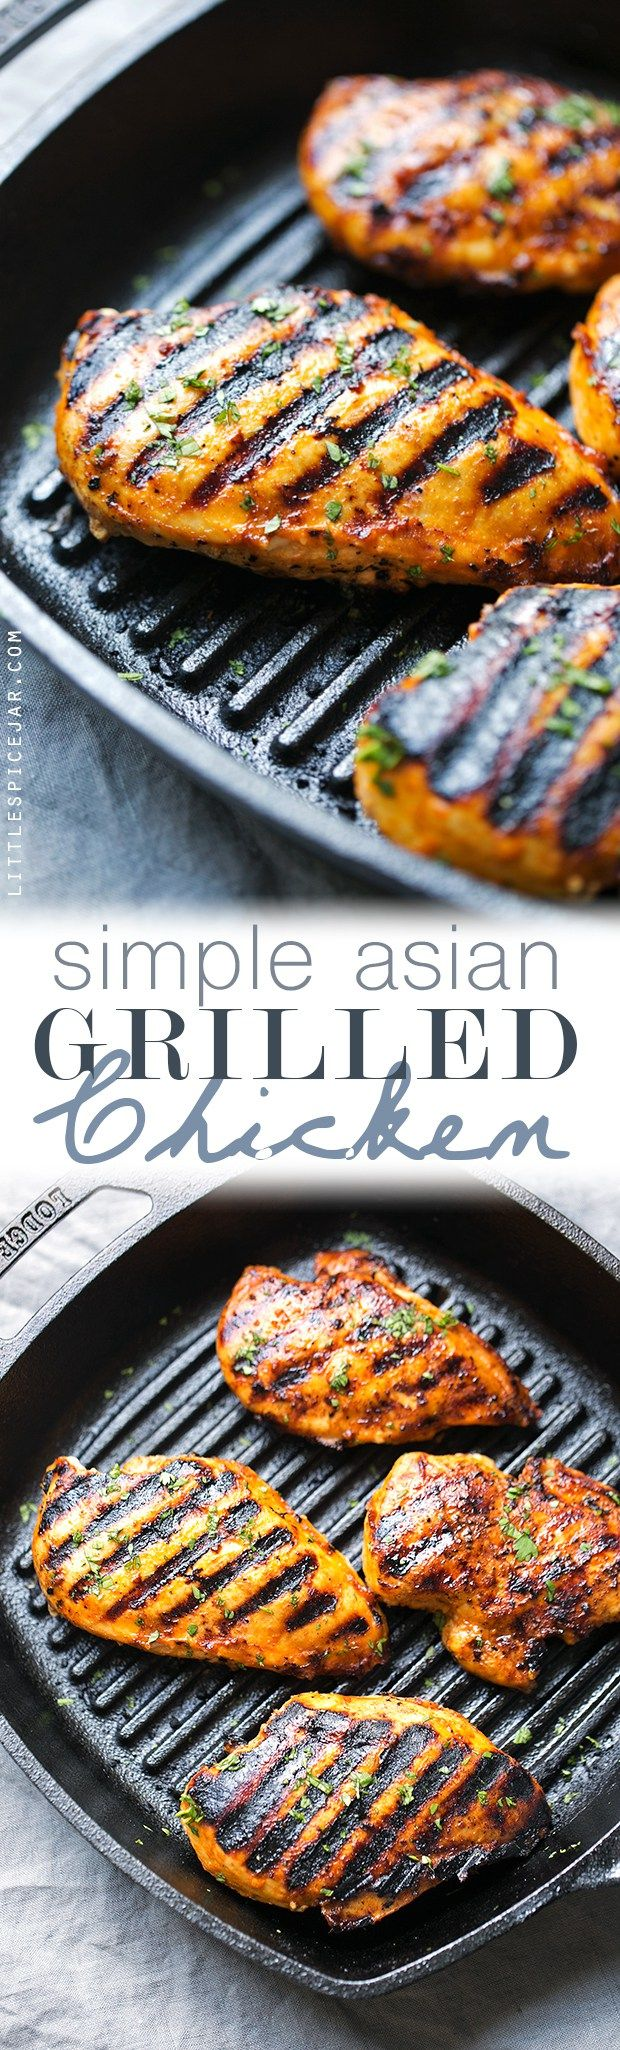 Simple Asian Grilled Chicken - tender and juicy chicken breasts marinated with spicy sriracha and a secret ingredient that makes this chicken to die for! Coming in at just over 200 calories.